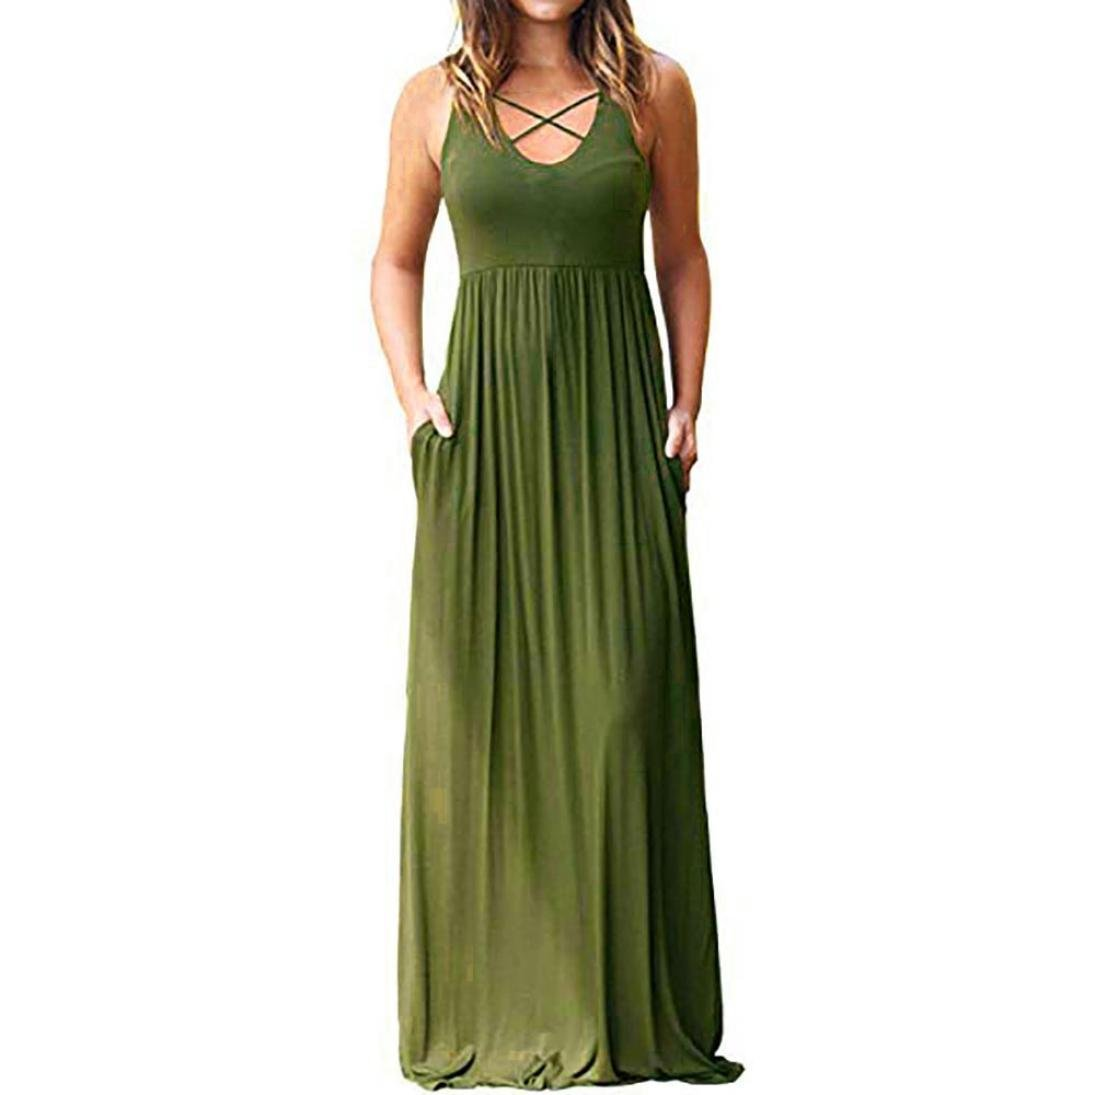 Luckylin Fashion O-Neck Sleeveless Criss Cross Front Boho Evening Long Dresses with Pockets (XL, Green)